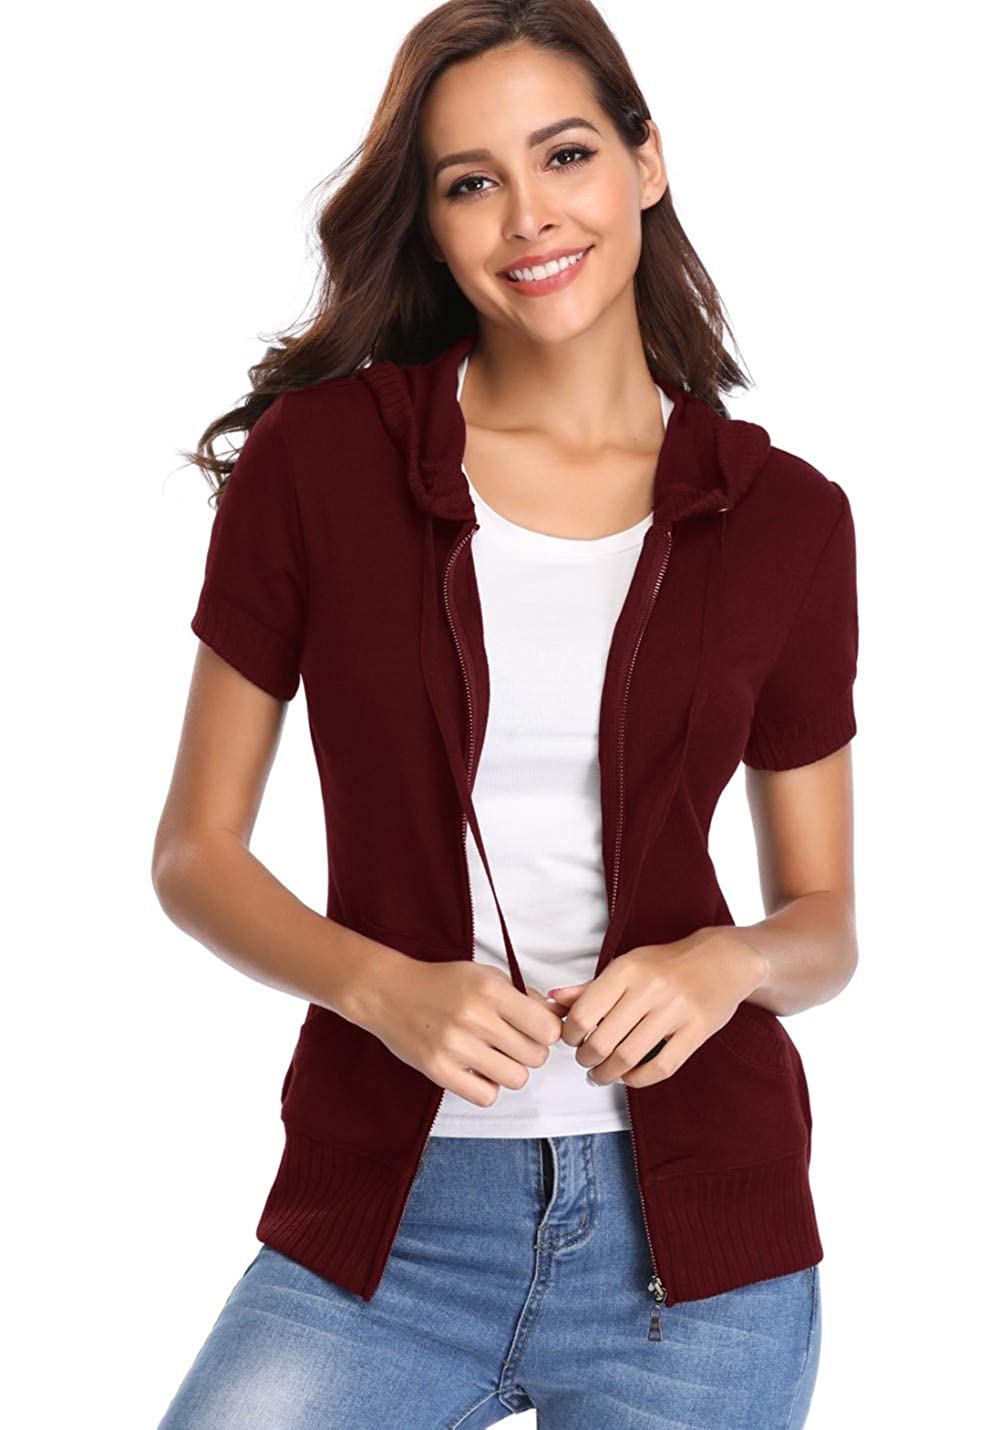 MISS MOLY Womens Short Sleeve Zip up Hoodies Lightweight Running Jackets Casual Sweatshirt Outfit with Pockets